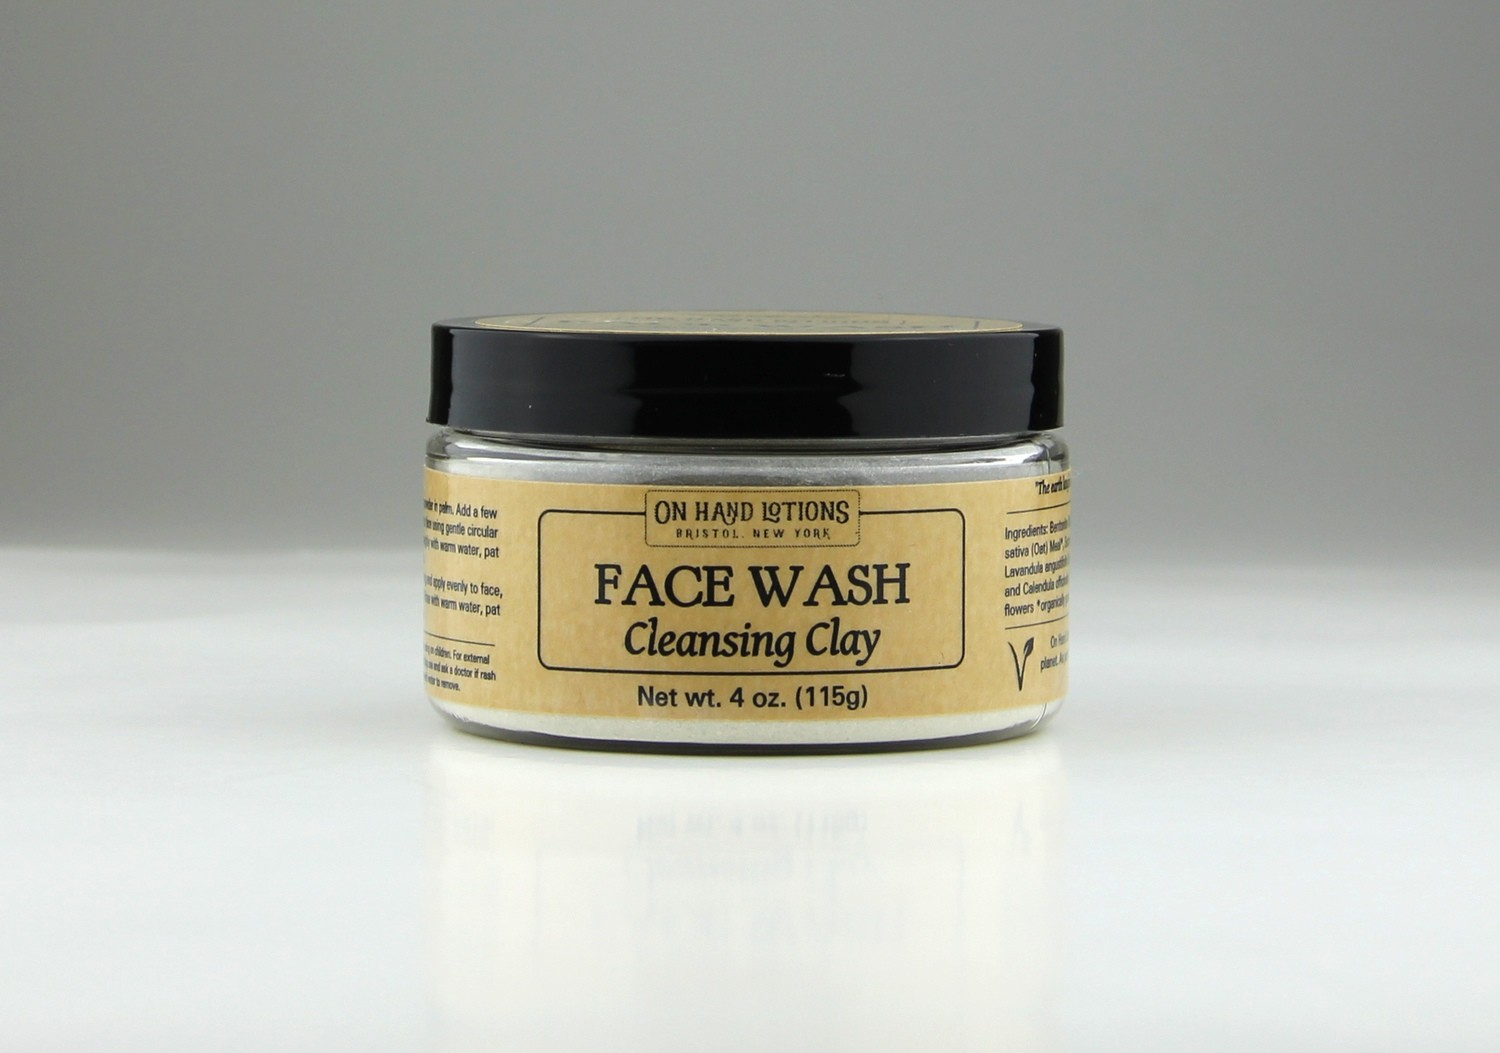 Cleansing Clay Face Wash & Mask